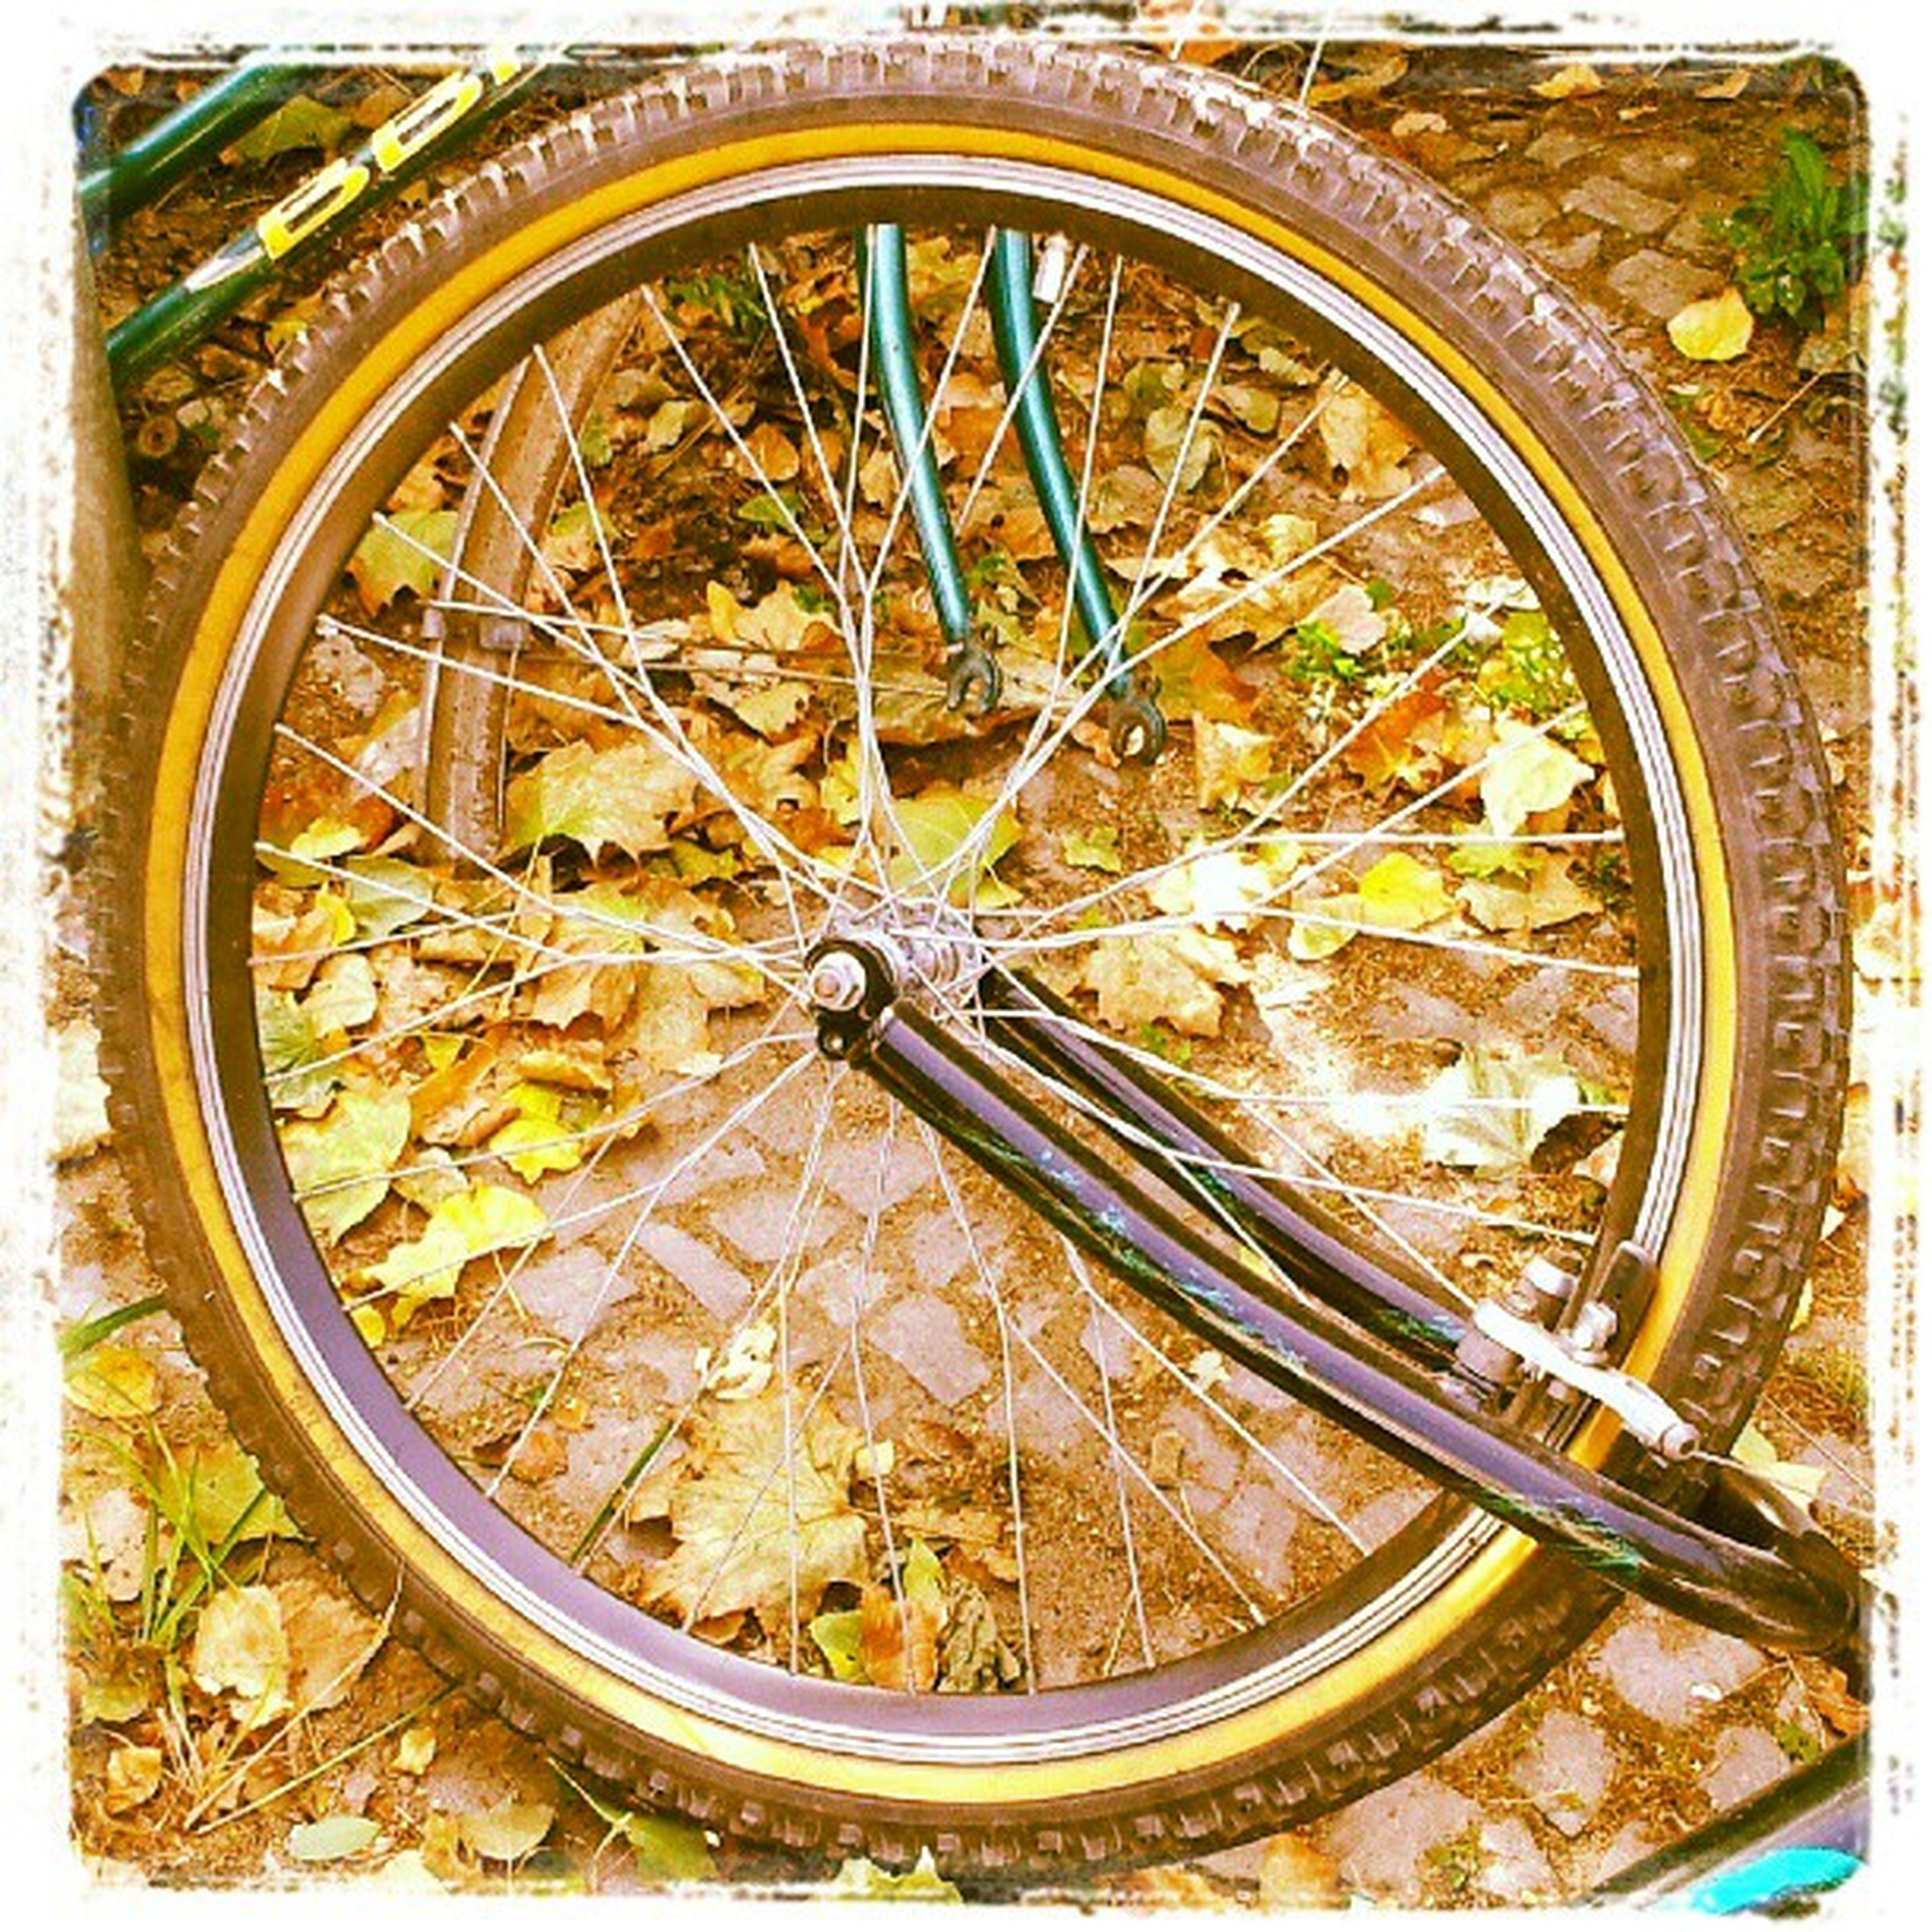 wheel, bicycle, transportation, tire, land vehicle, auto post production filter, mode of transport, circle, high angle view, transfer print, day, metal, no people, outdoors, stationary, art and craft, old, part of, close-up, built structure